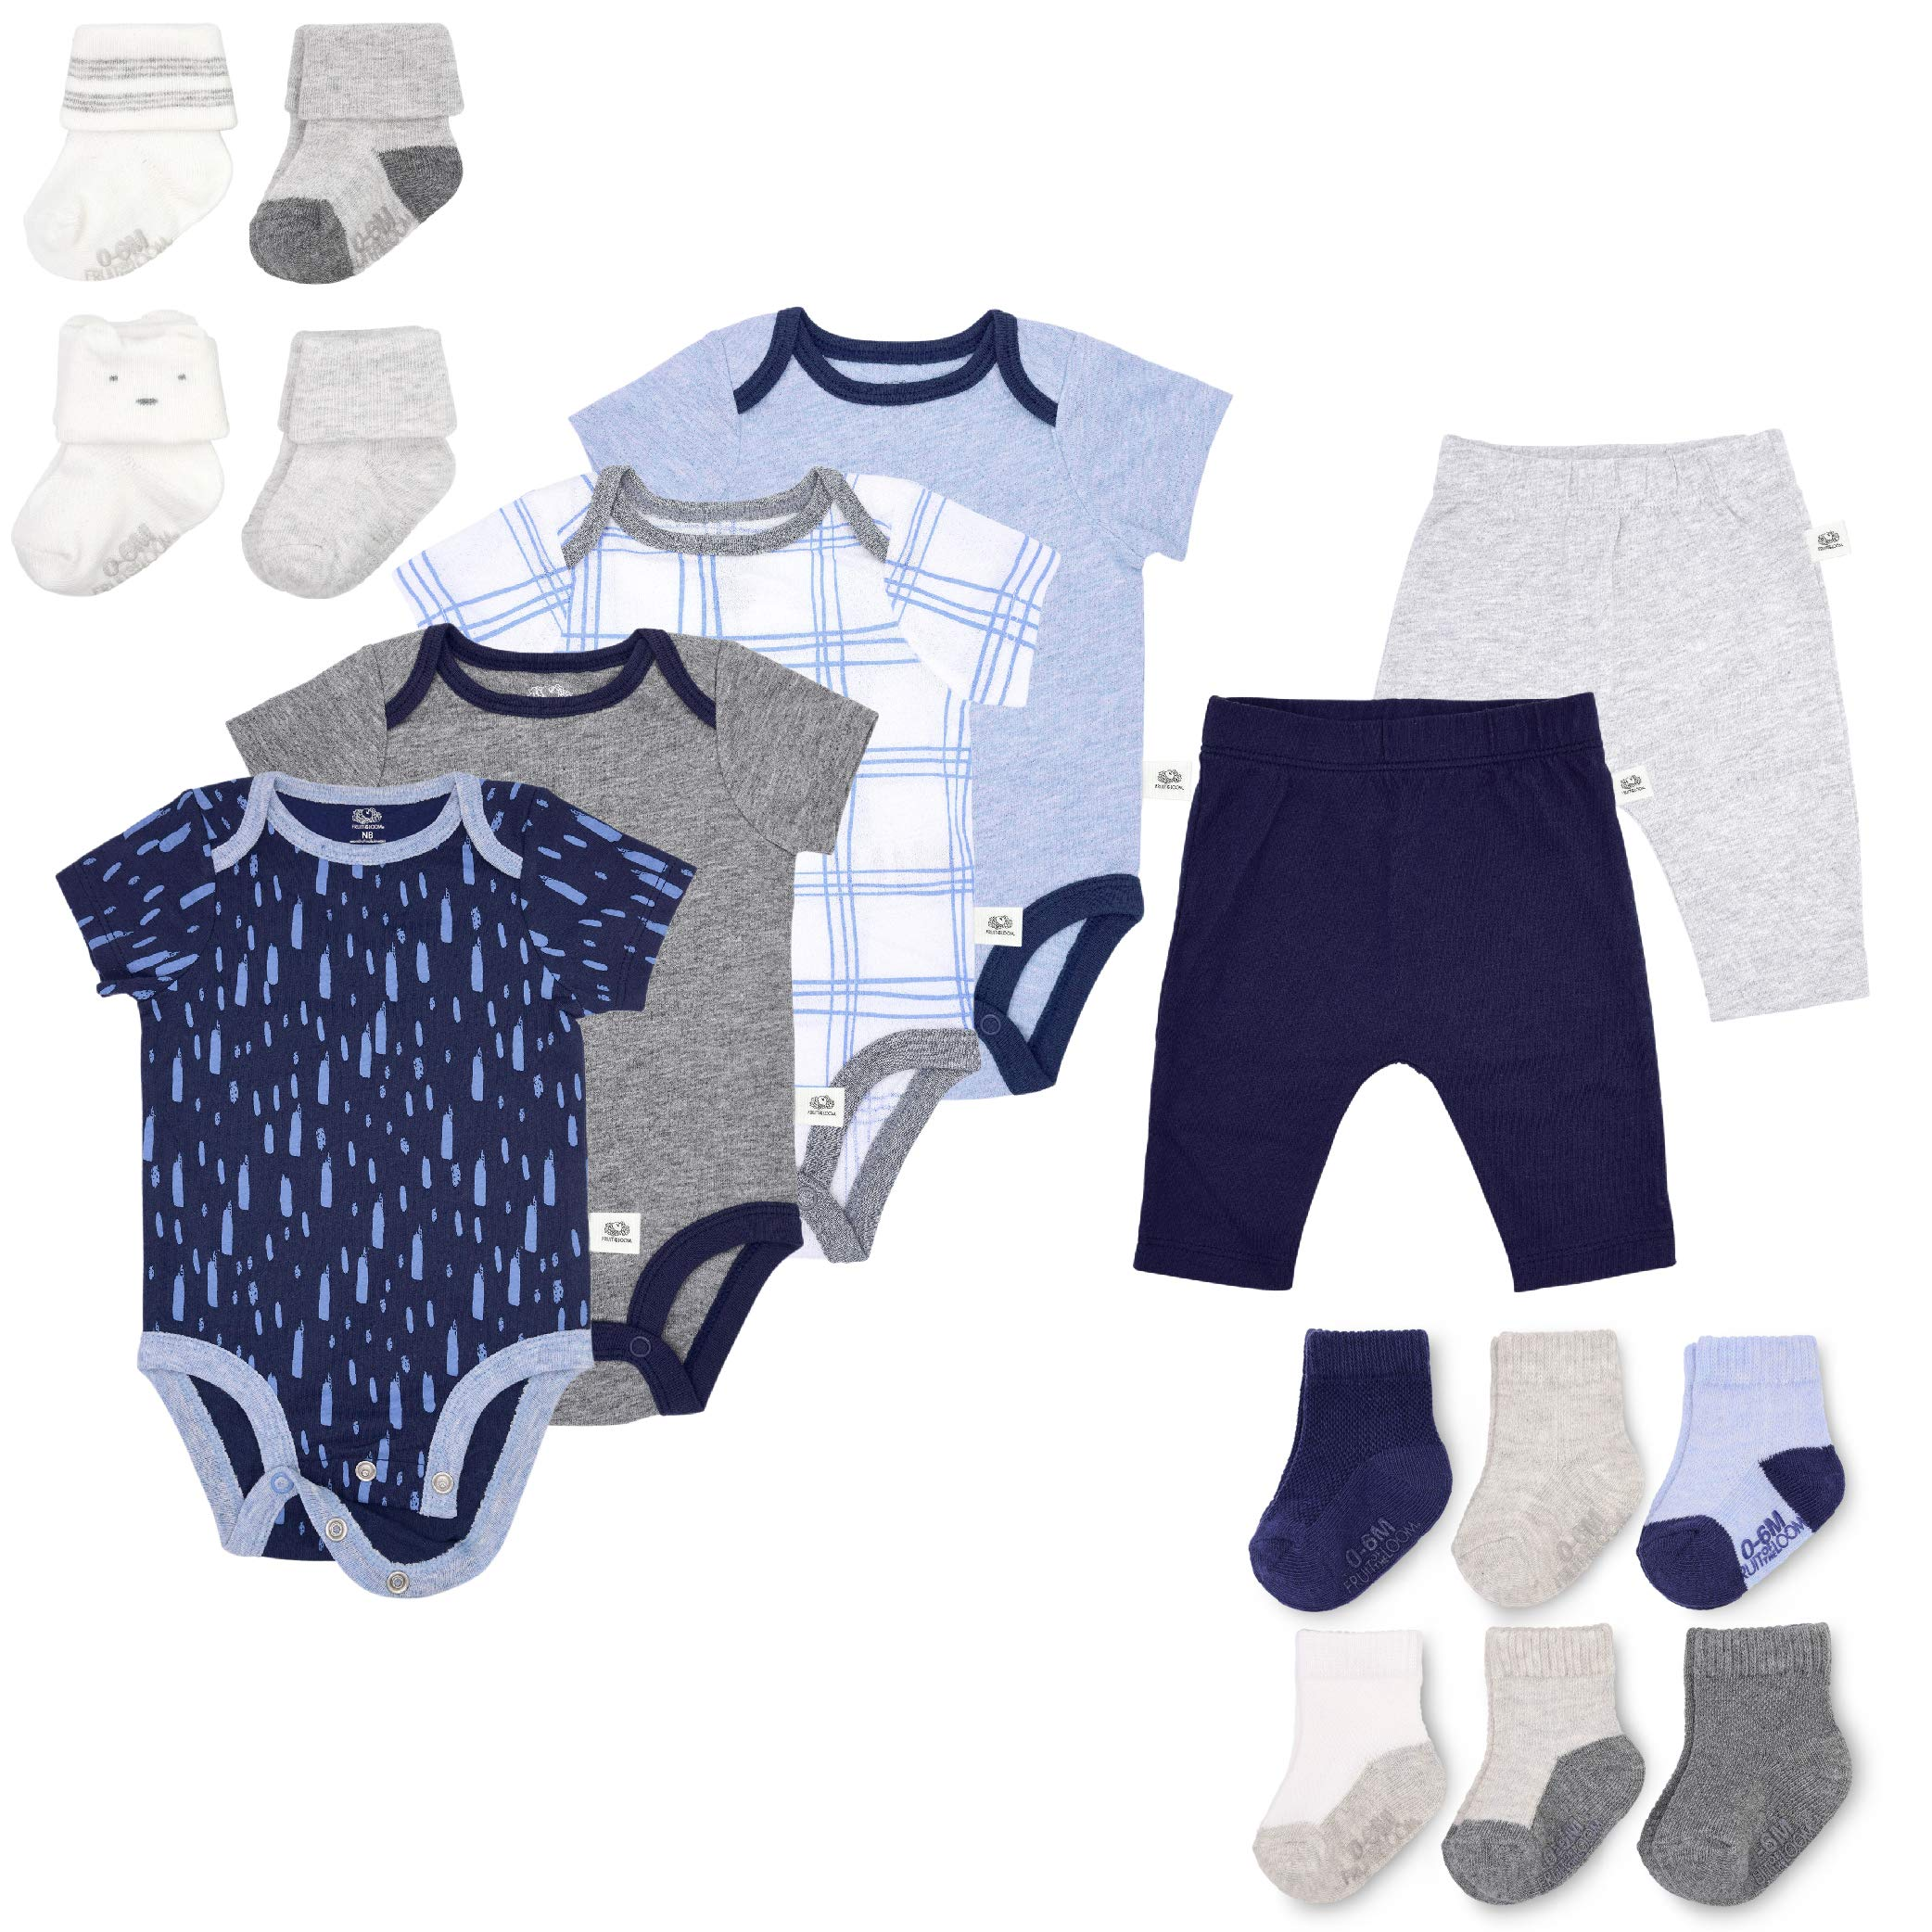 Fruit of the Loom Baby Gift Set 16-Piece Breathable Cooling Mesh Bodysuits, Pants and Socks - Unisex, Girls, Boys (New Born, Blue) by Fruit of the Loom